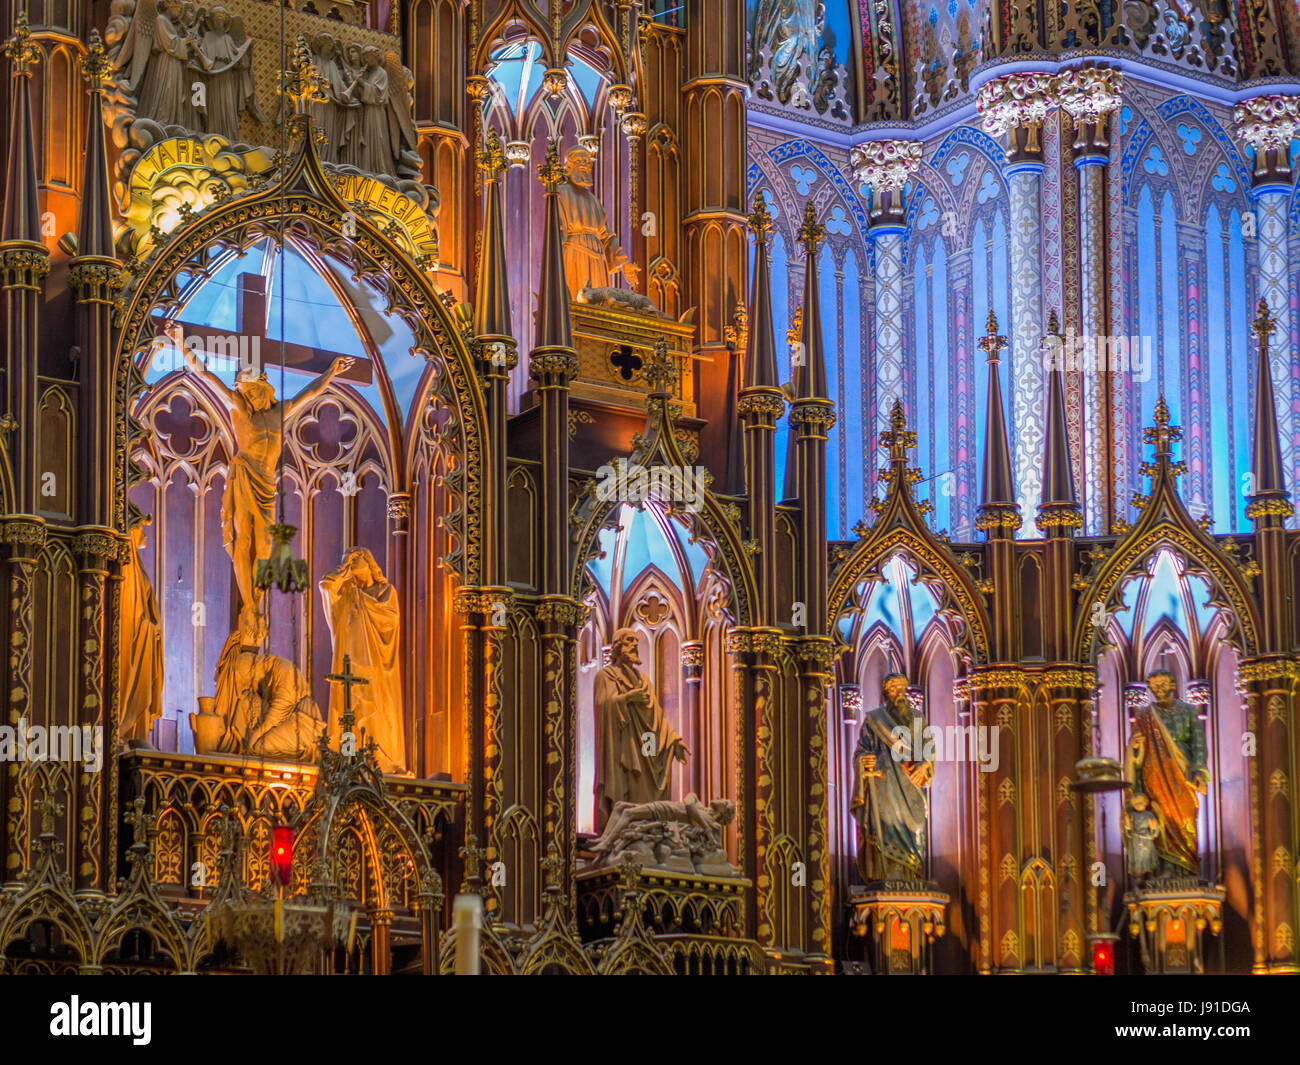 The statue of Jesus at Notre Dame Basilica, Montreal in a Eucharistic theme - Stock Image